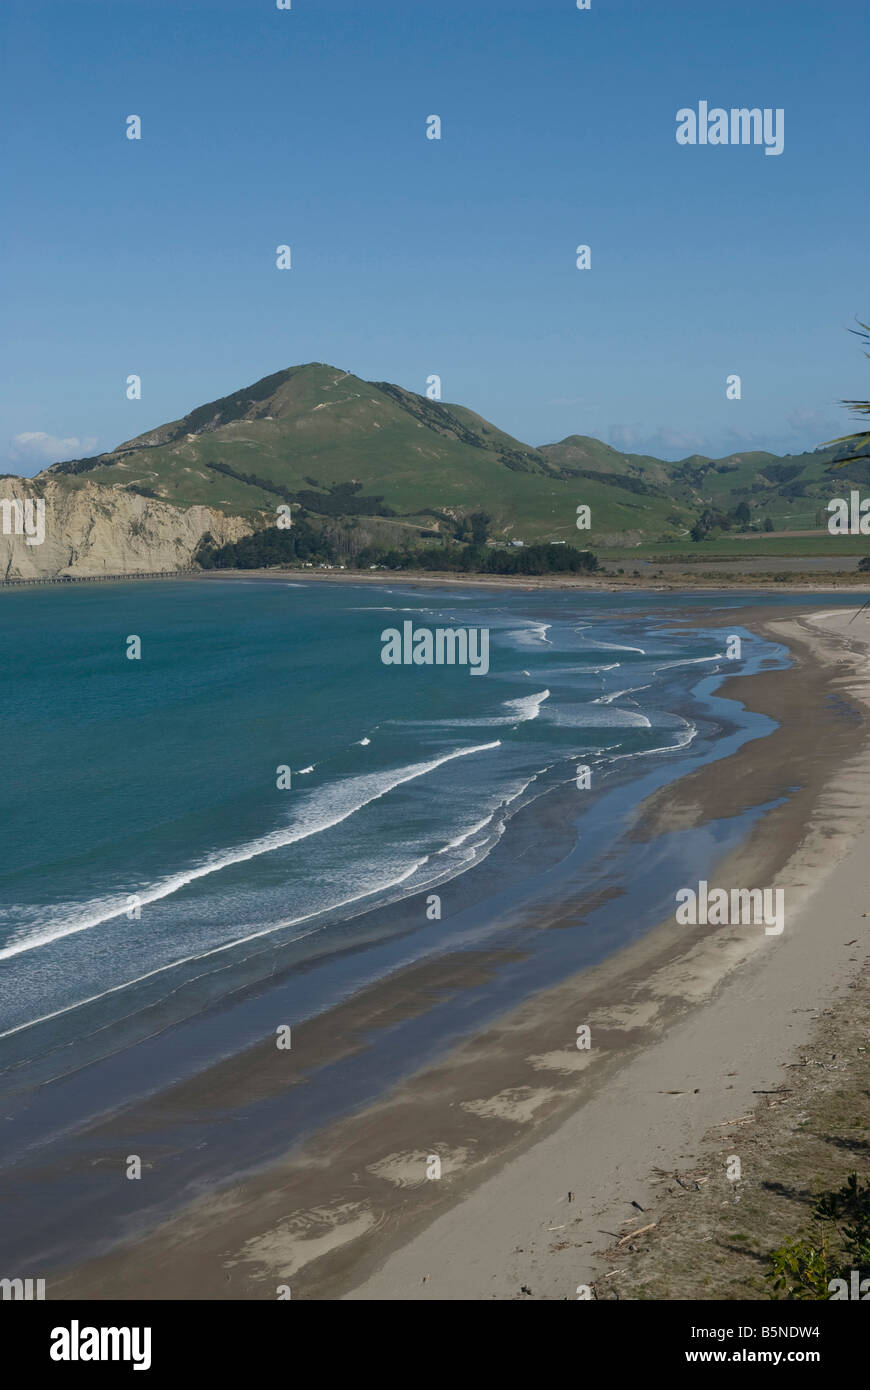 Tolaga bay beach on the North island of New-Zealand. - Stock Image